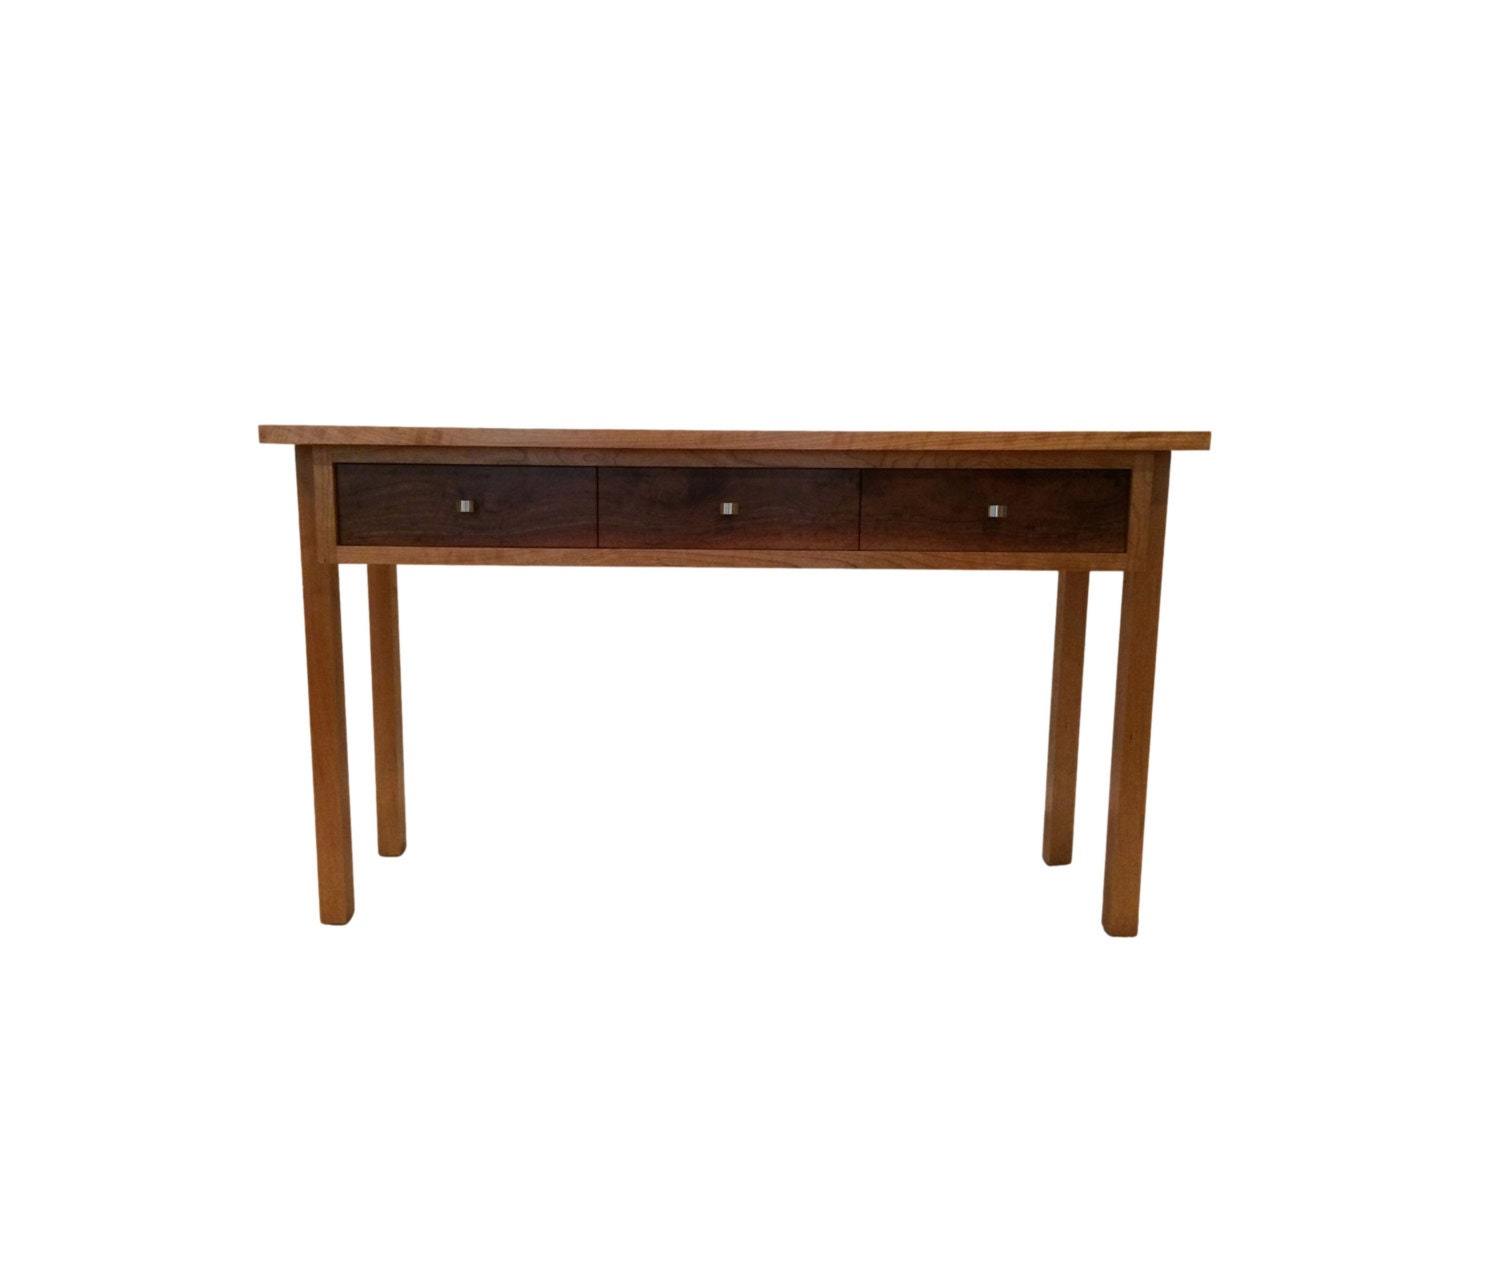 Marvelous photograph of Three Drawer Cherry Wood Console Table Fine by MayfieldModern with #6C3E1E color and 1500x1261 pixels